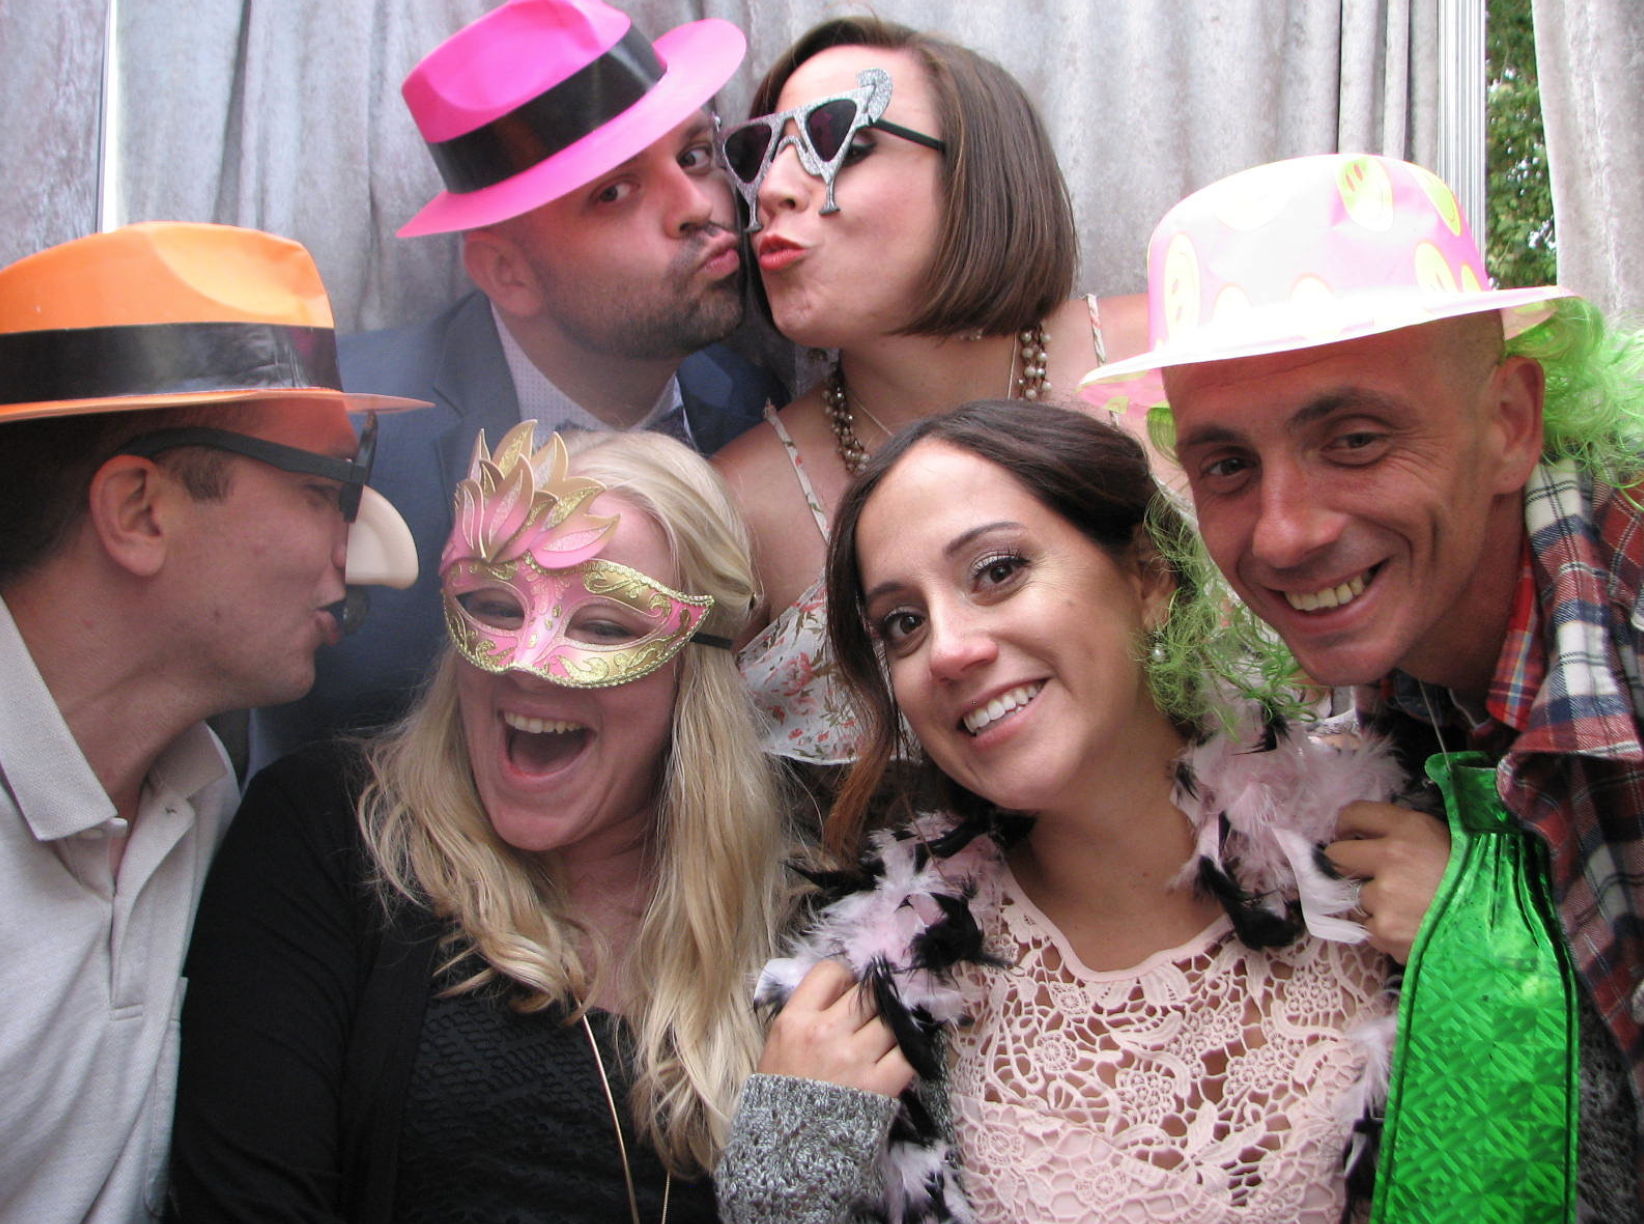 Photo Booth - Great fun and lasting memories; a great addition to a reception or dance party.3 Hour package $650 + $90 / each addt'l hourIncludes fun party props packageNote: Prices valid when combined with DJ package